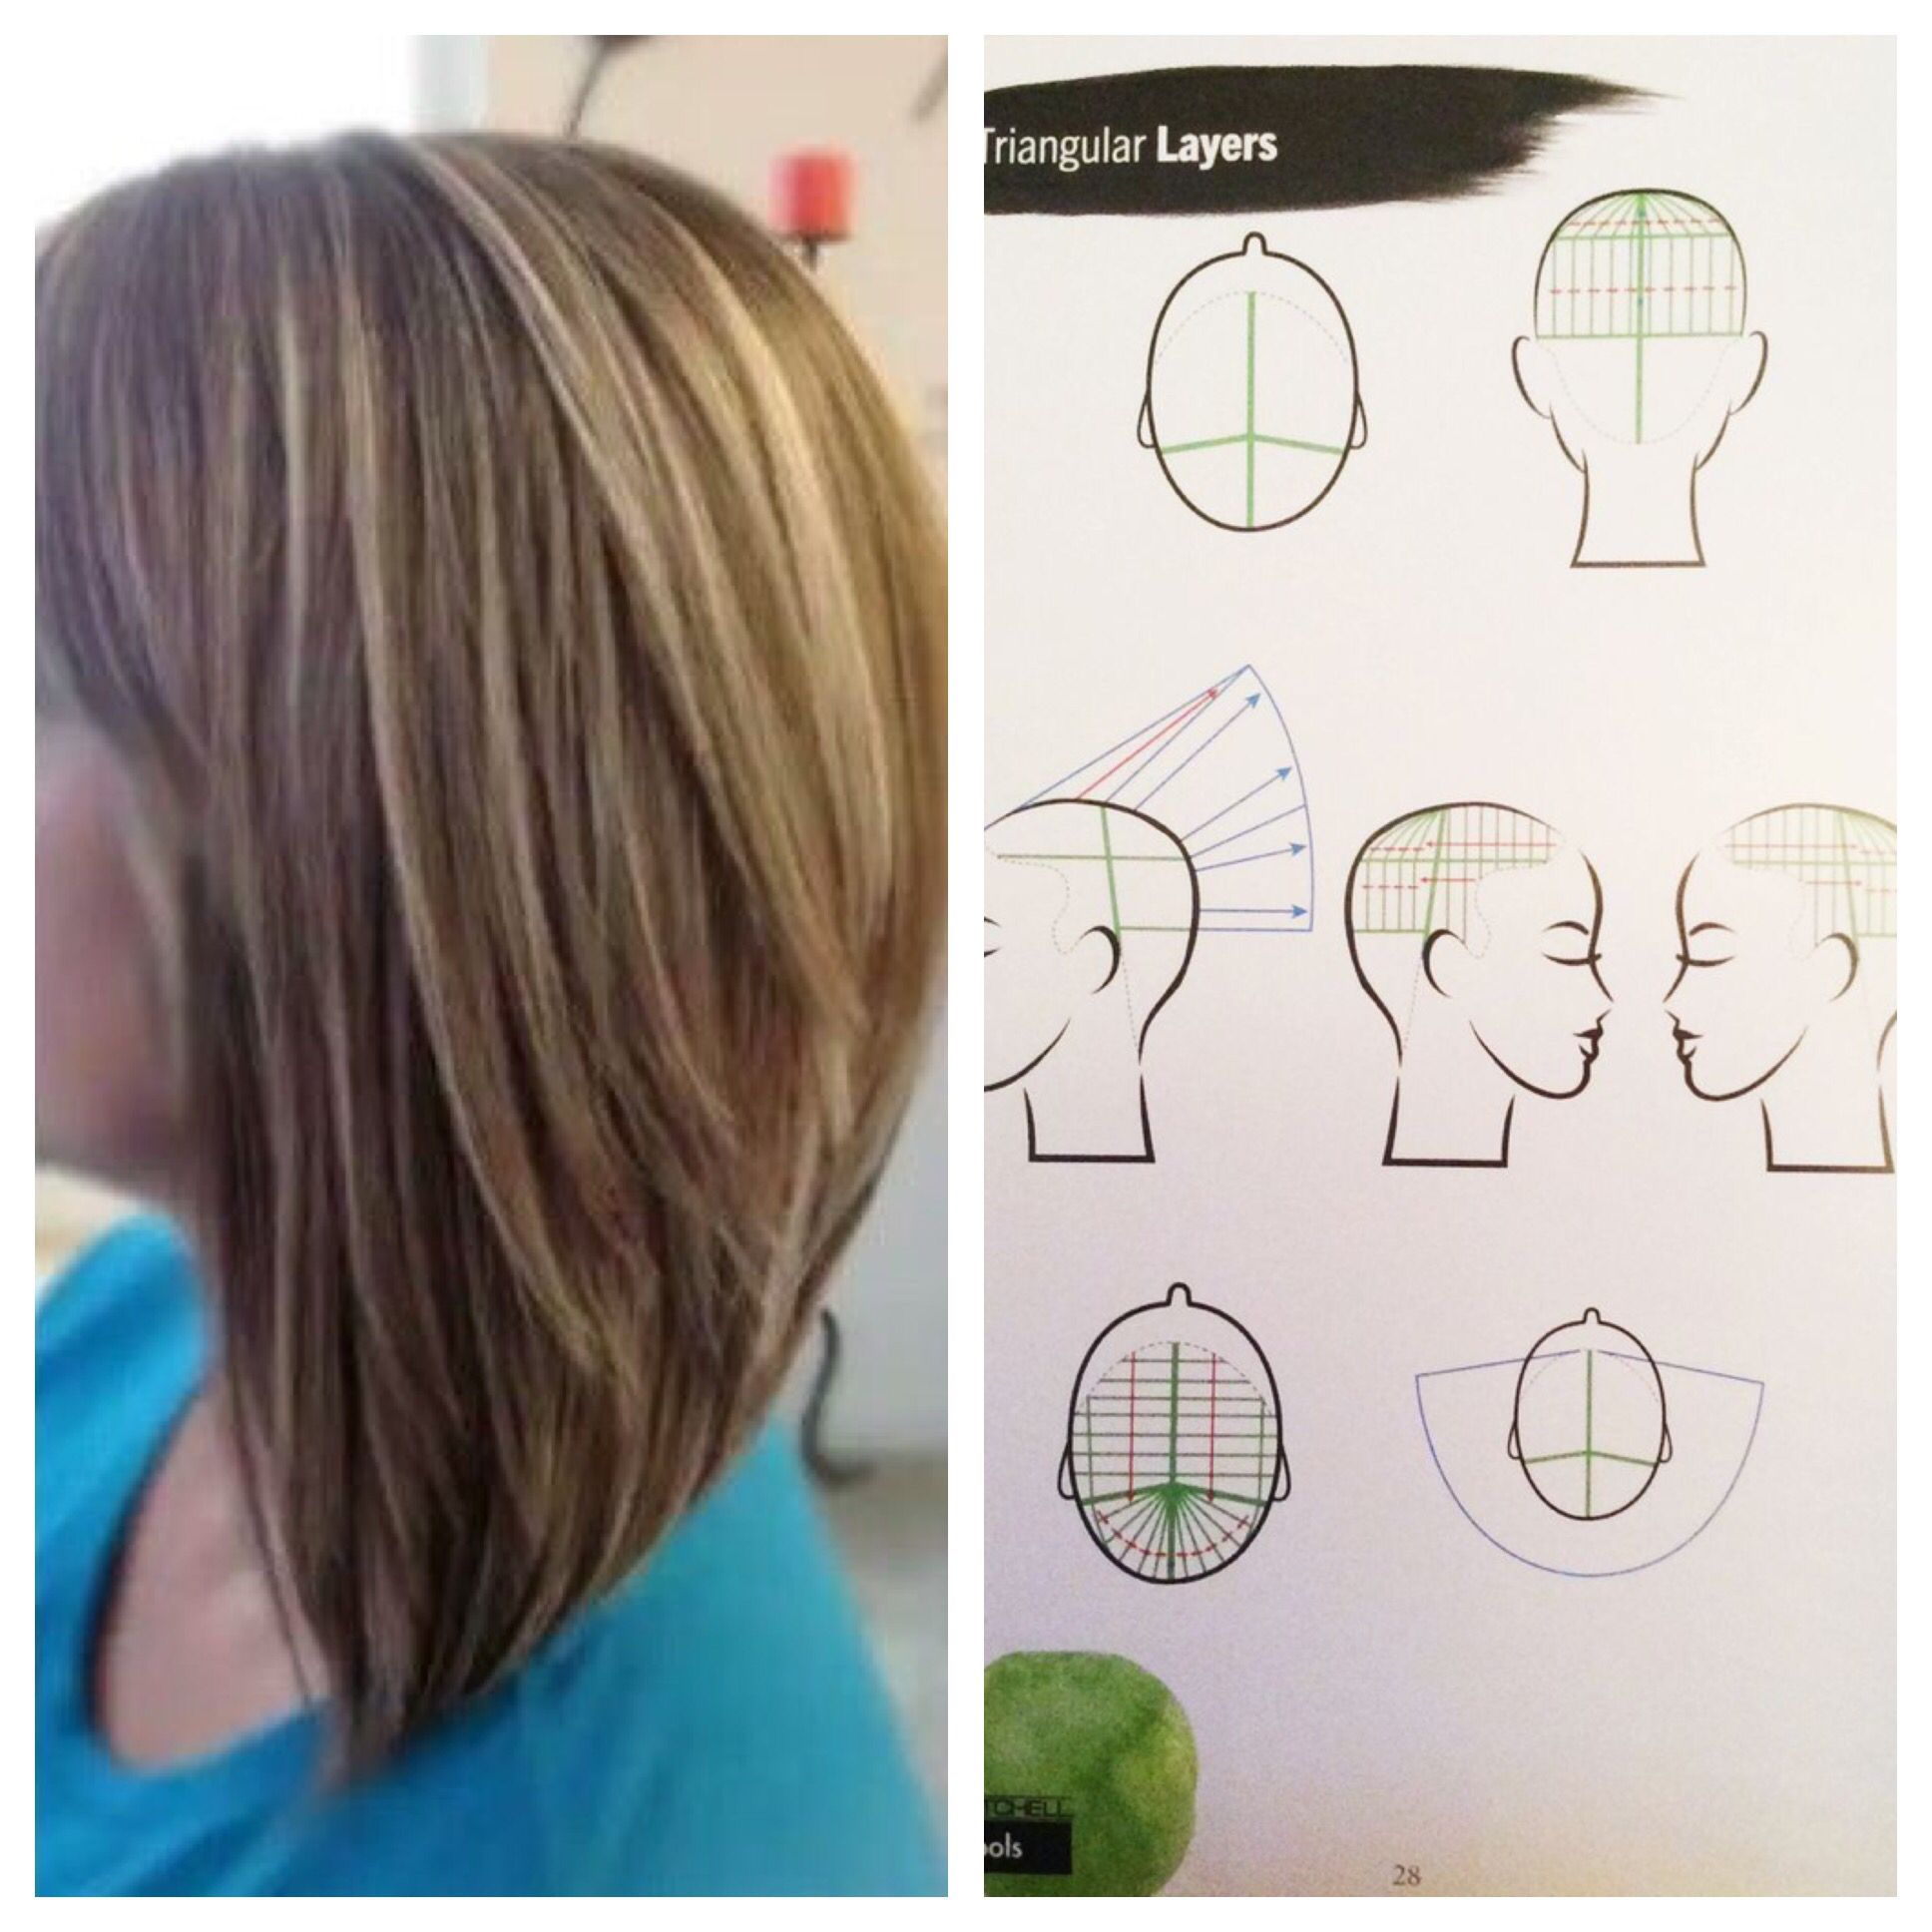 hight resolution of 180 degree haircut diagram how to tie a tie diagram wiring diagrams 180 degree haircut diagram how to tie a tie diagram